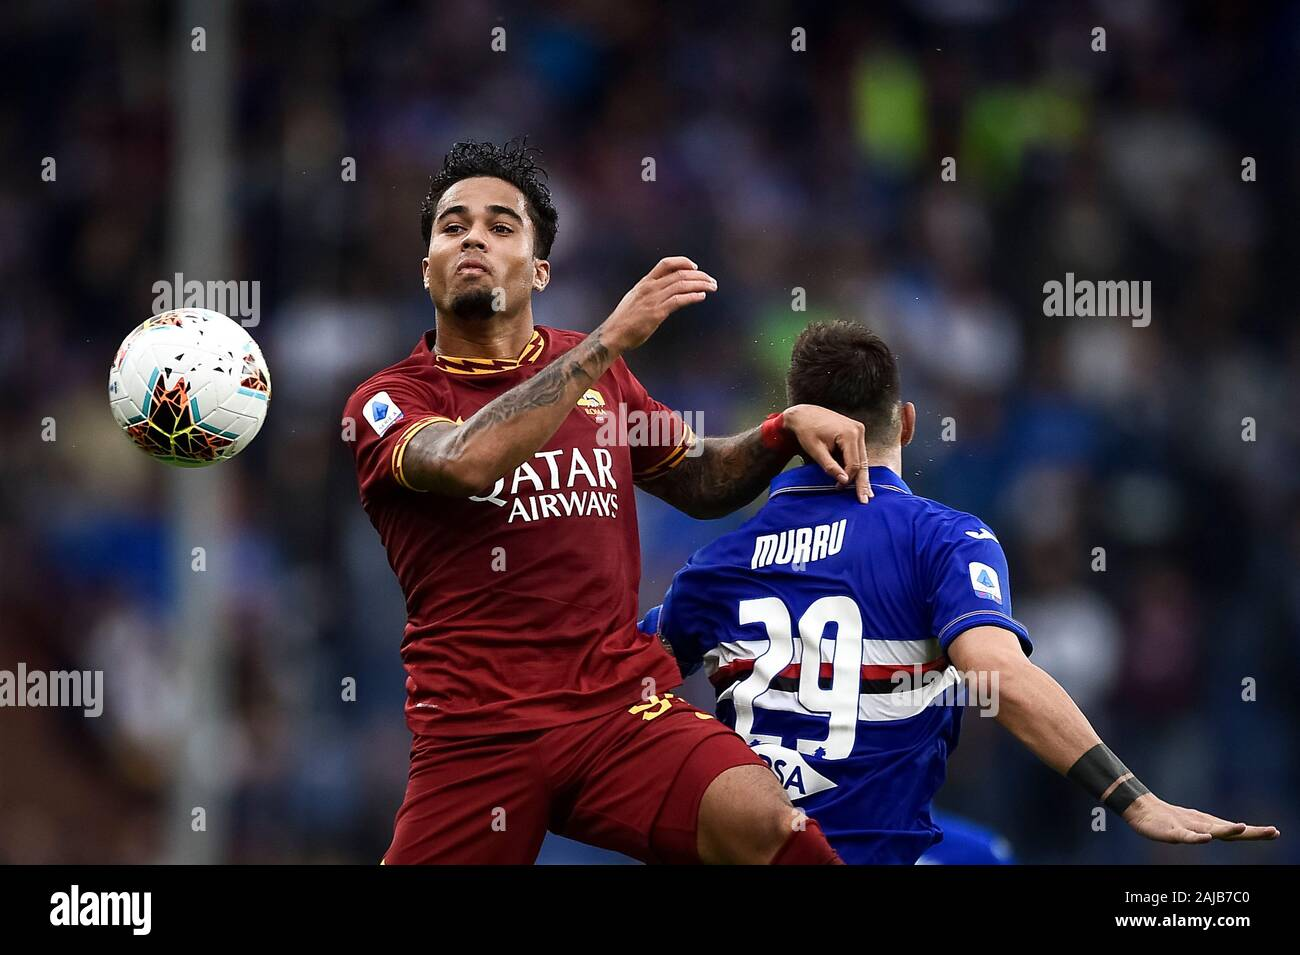 Genoa, Italy - 20 October, 2019: Justin Kluivert (L) of AS Roma competes for the ball with Nicola Murru of UC Sampdoria during the Serie A football match between UC Sampdoria and AS Roma. The match ended in a 0-0 tie. Credit: Nicolò Campo/Alamy Live News Stock Photo